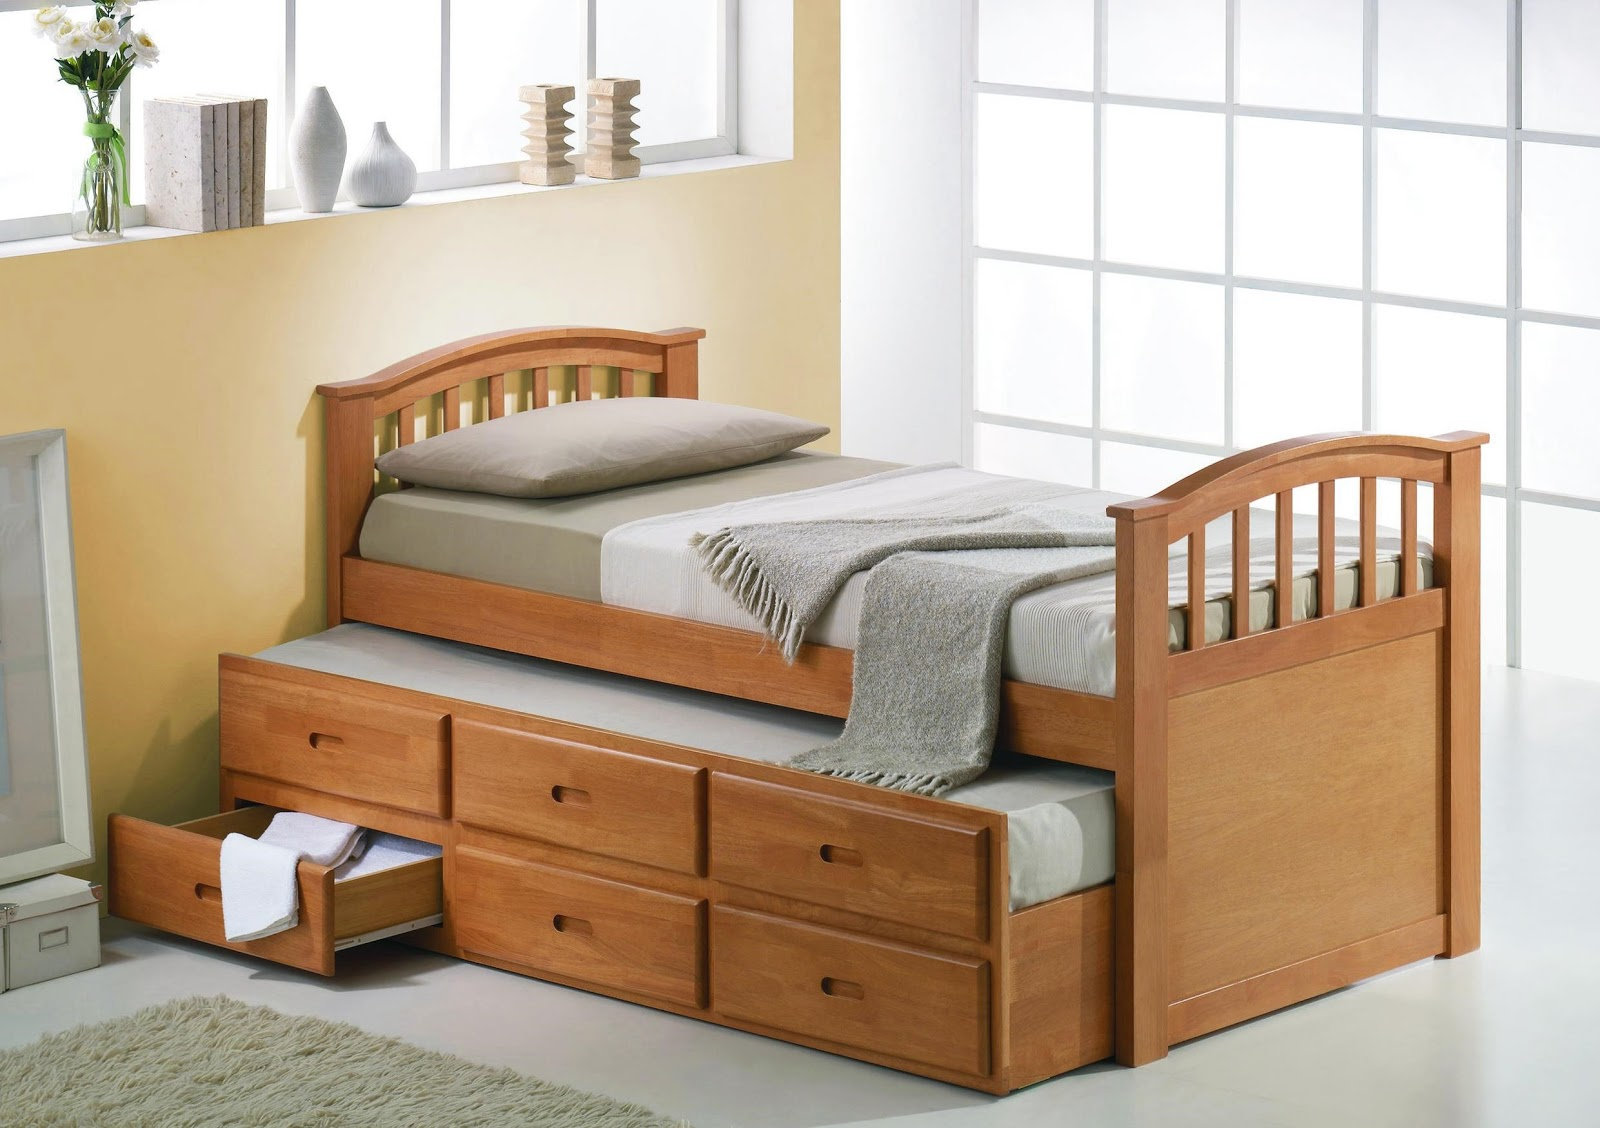 Woodwork wooden bed designs with storage in india pdf plans for Bedroom furniture design for small spaces